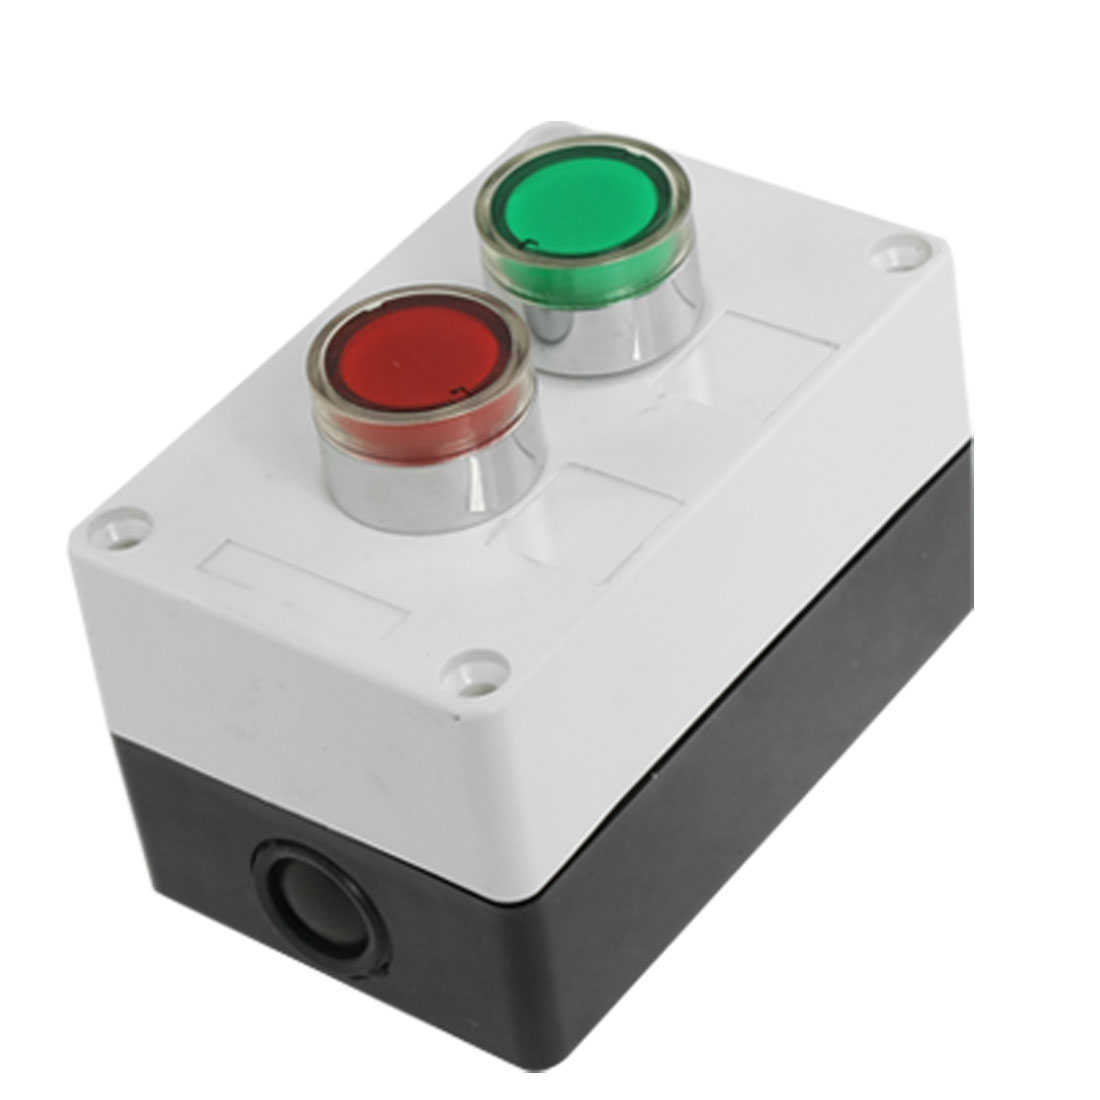 DC 24V Green Red Signal Lamp NC NO Momentary Push Button Switch Control Box